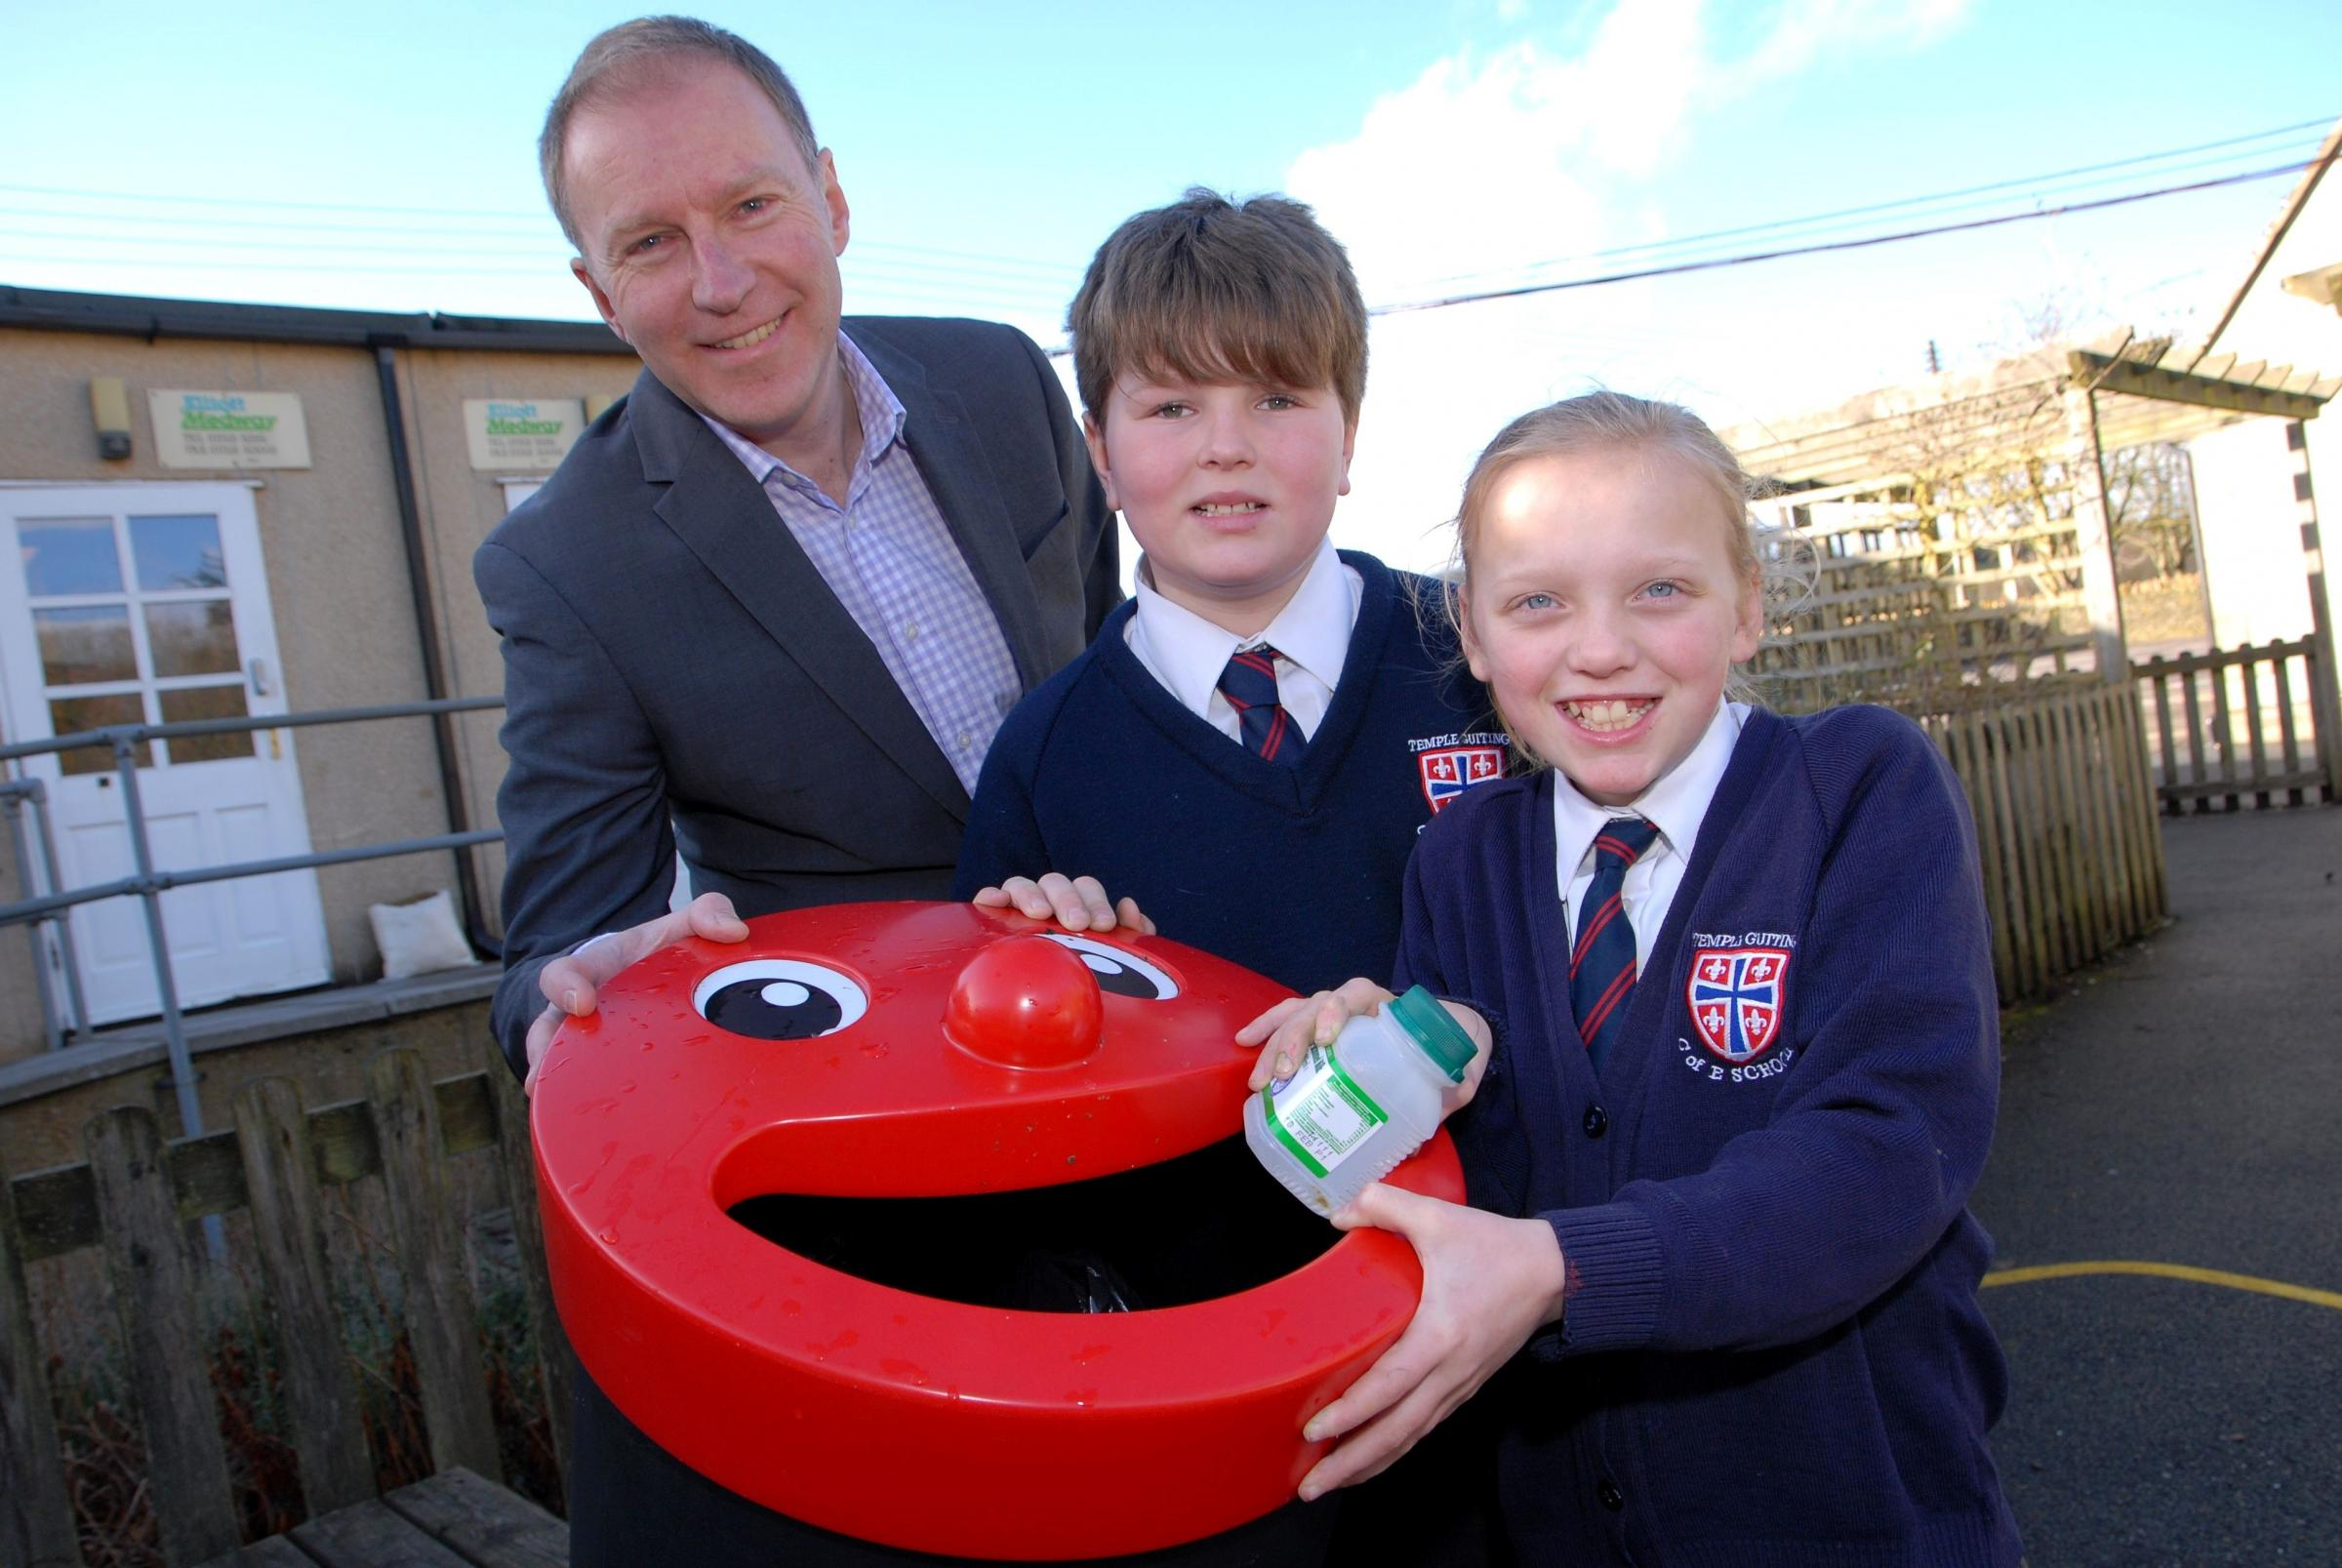 0714519702 Paul Jackson 11.02.14 Temple Guiting Cllr. Paul Hodgkinson has launched a campaign to get all the Cotswold primary schools recycling to be collected by the council to save cash. From left - Cllr Paul Hodgkinson, Harry Pinchin, 11 and Grace Reas